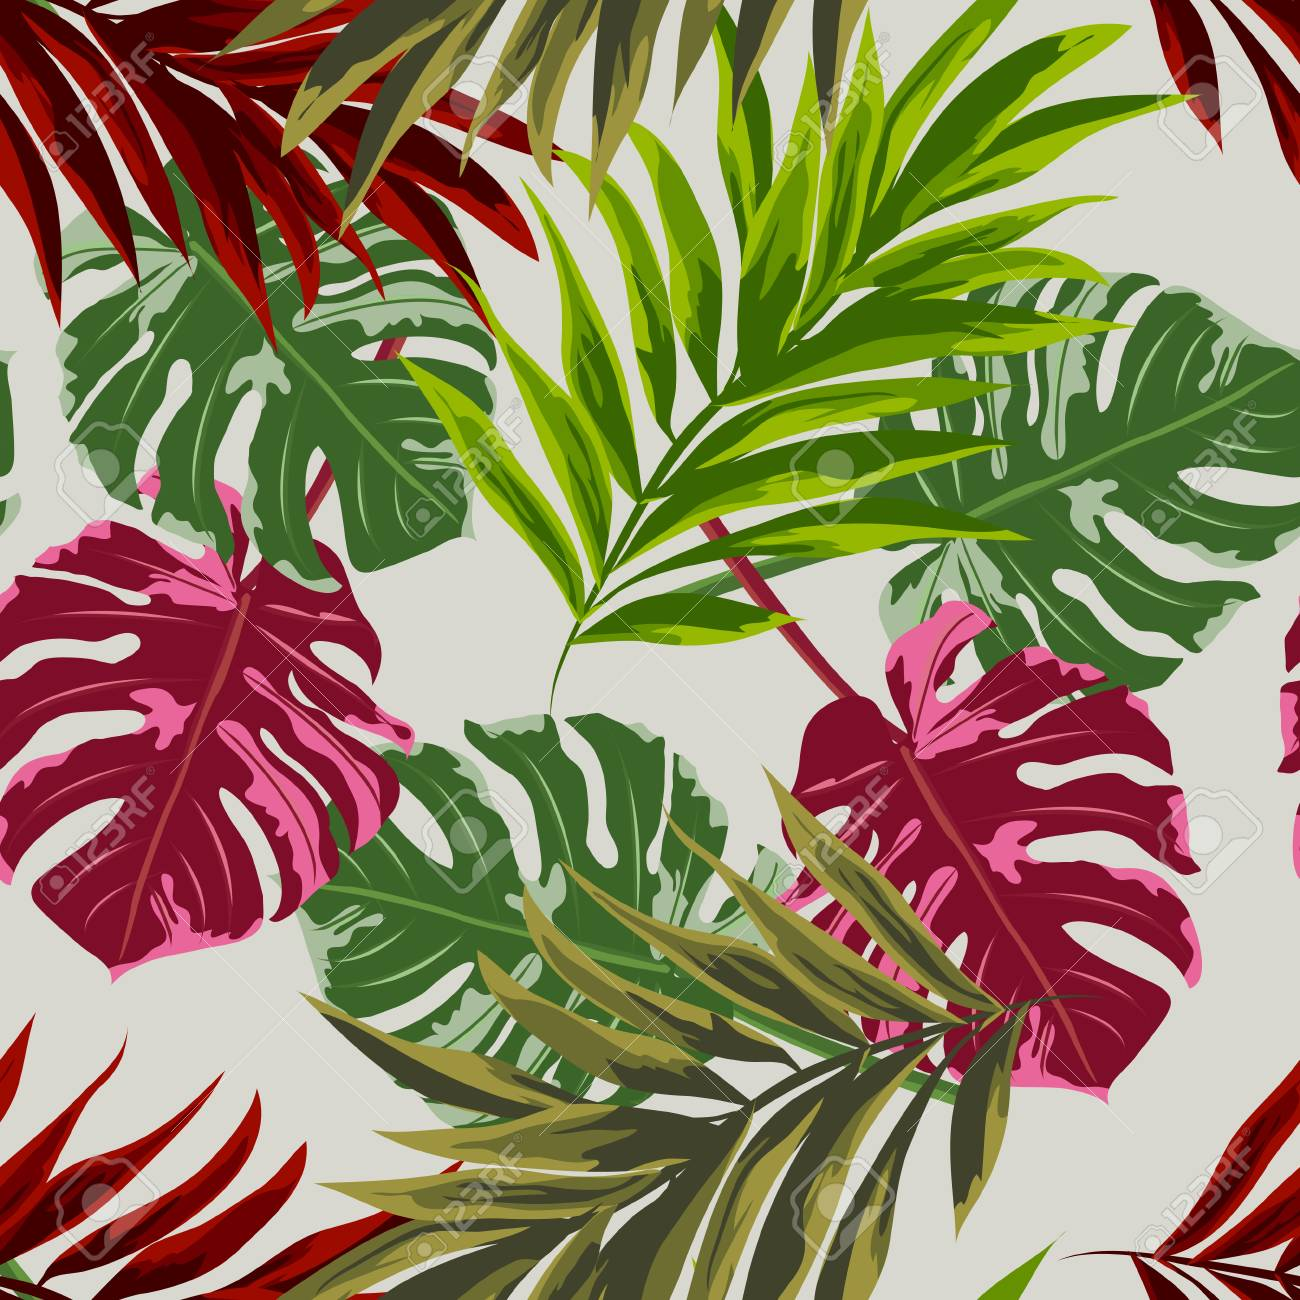 Seamless Background With Tropical Leaves Design For Cloth Wallpaper Royalty Free Cliparts Vectors And Stock Illustration Image 98018725 Certificate design with watercolor painted tropical leaves. 123rf com